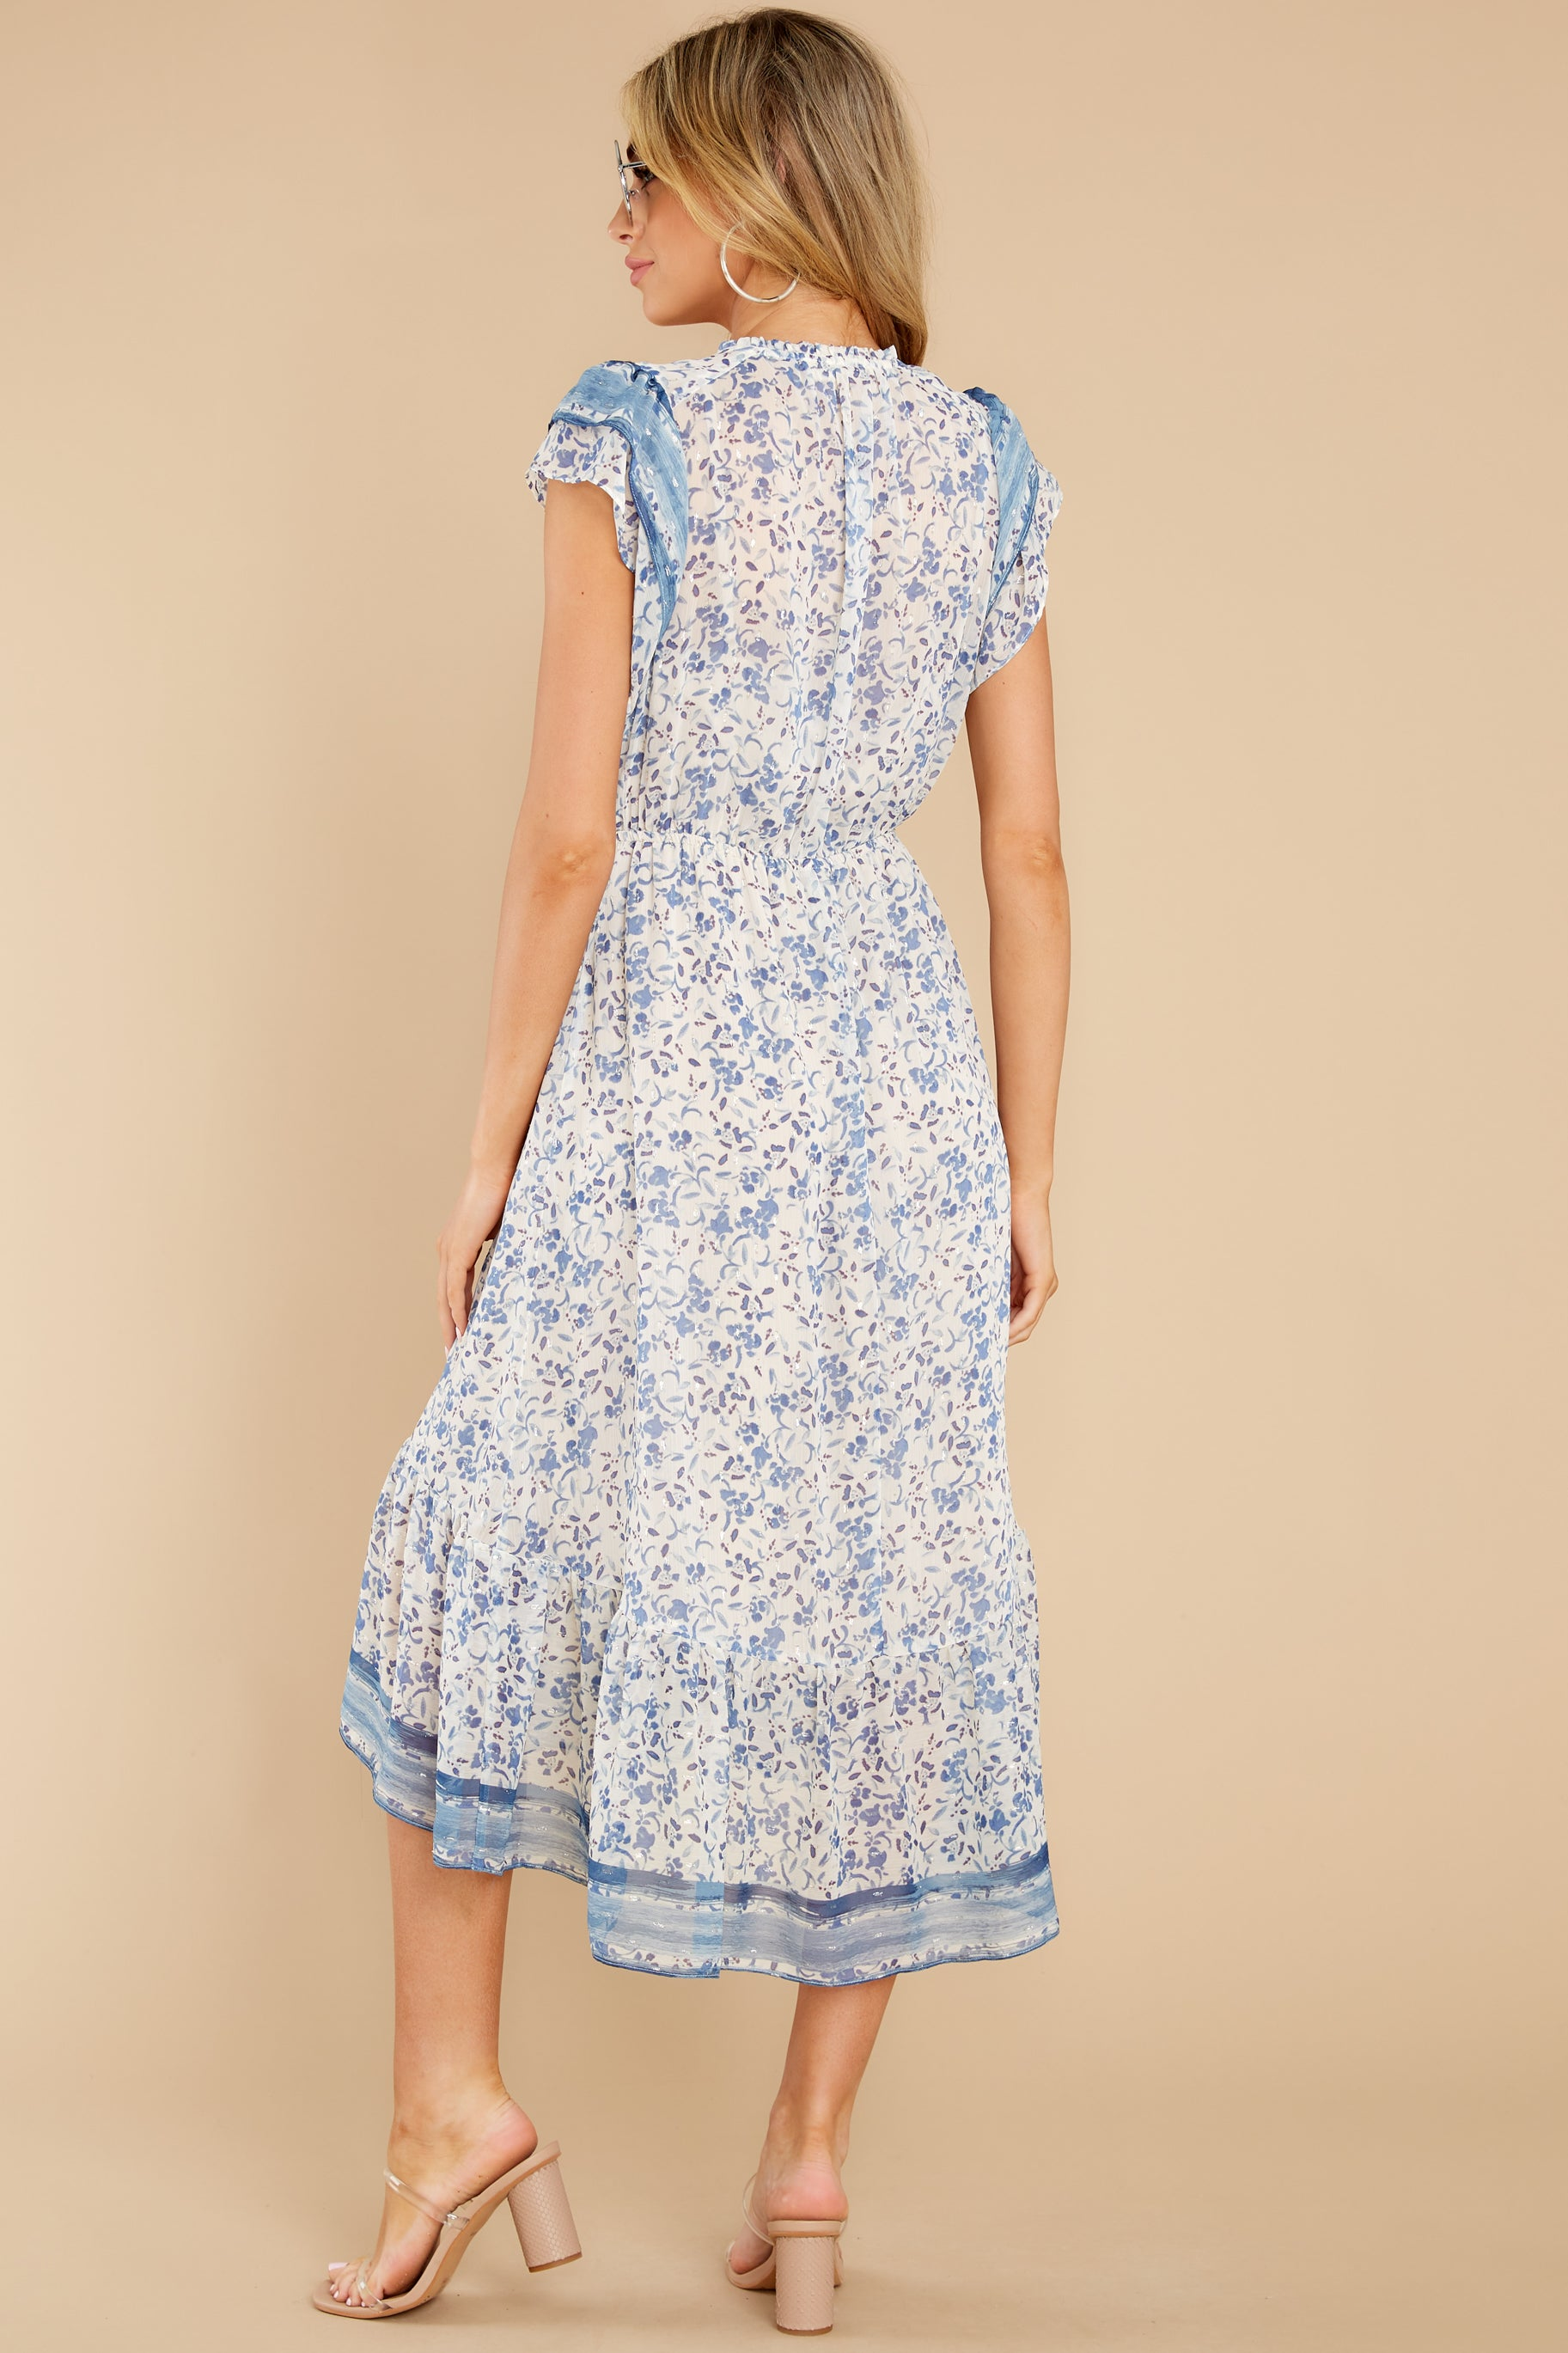 7 Nothing But Us Blue Floral Print Midi Dress at reddress.com